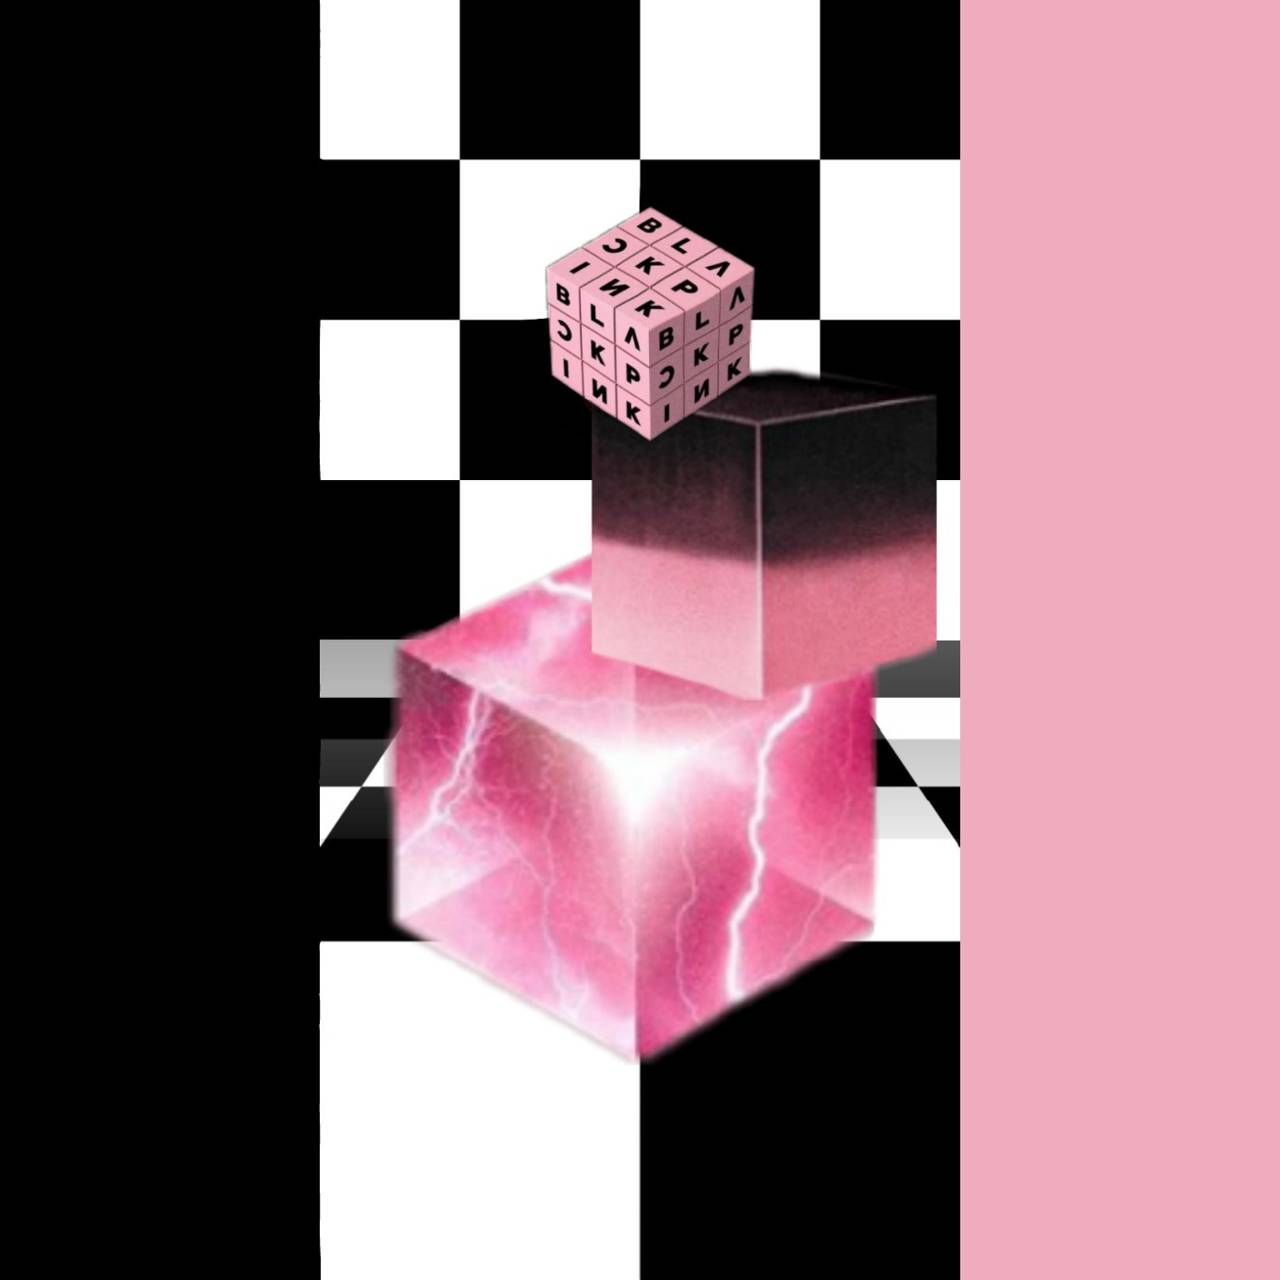 Blackpink Square Up Wallpaper By Llauver F9 Free On Zedge